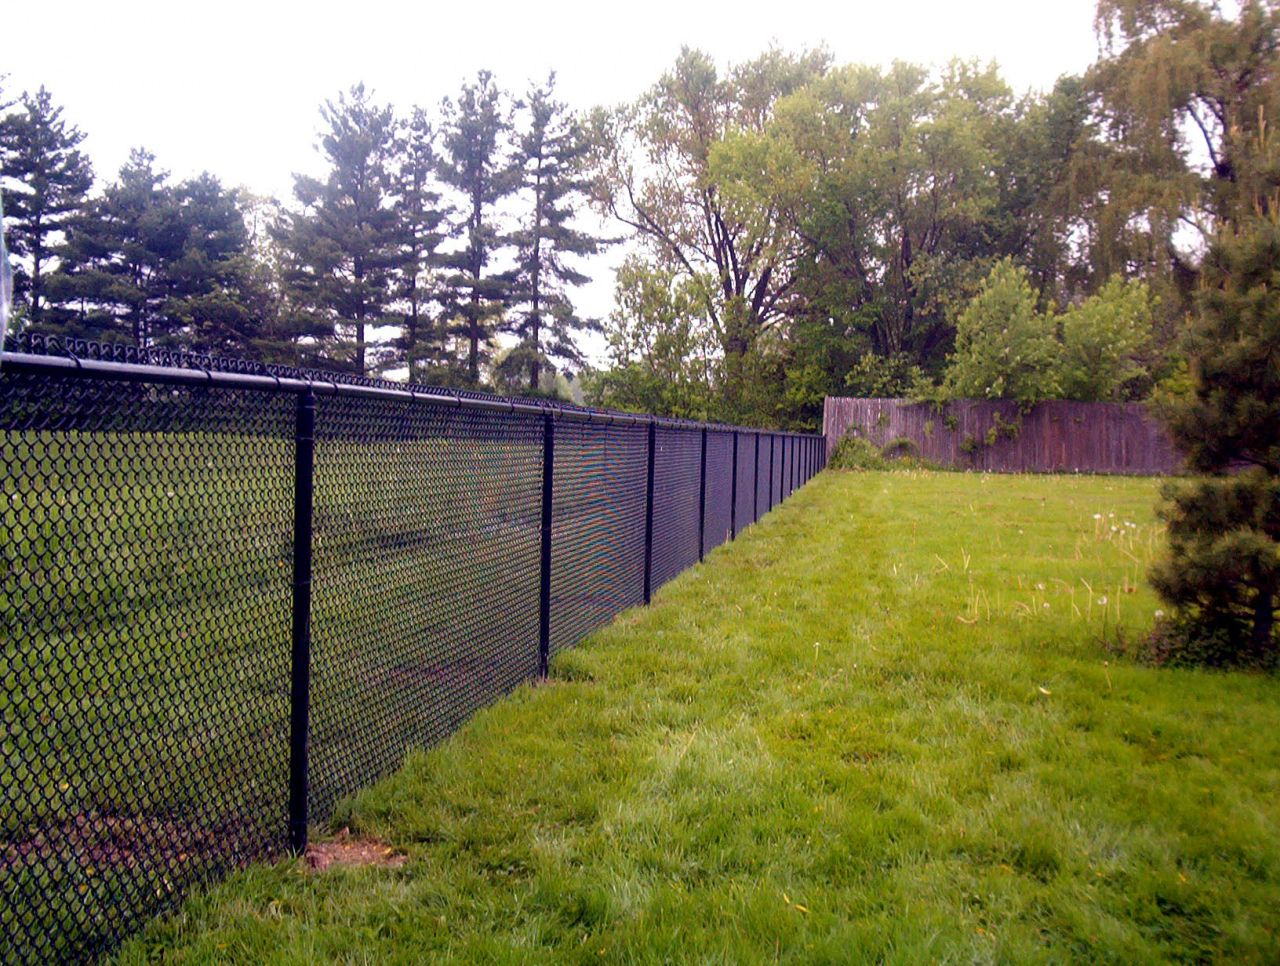 Black Chain Link Fence In 2020 Black Chain Link Fence Fence Design Chain Link Fence Cost